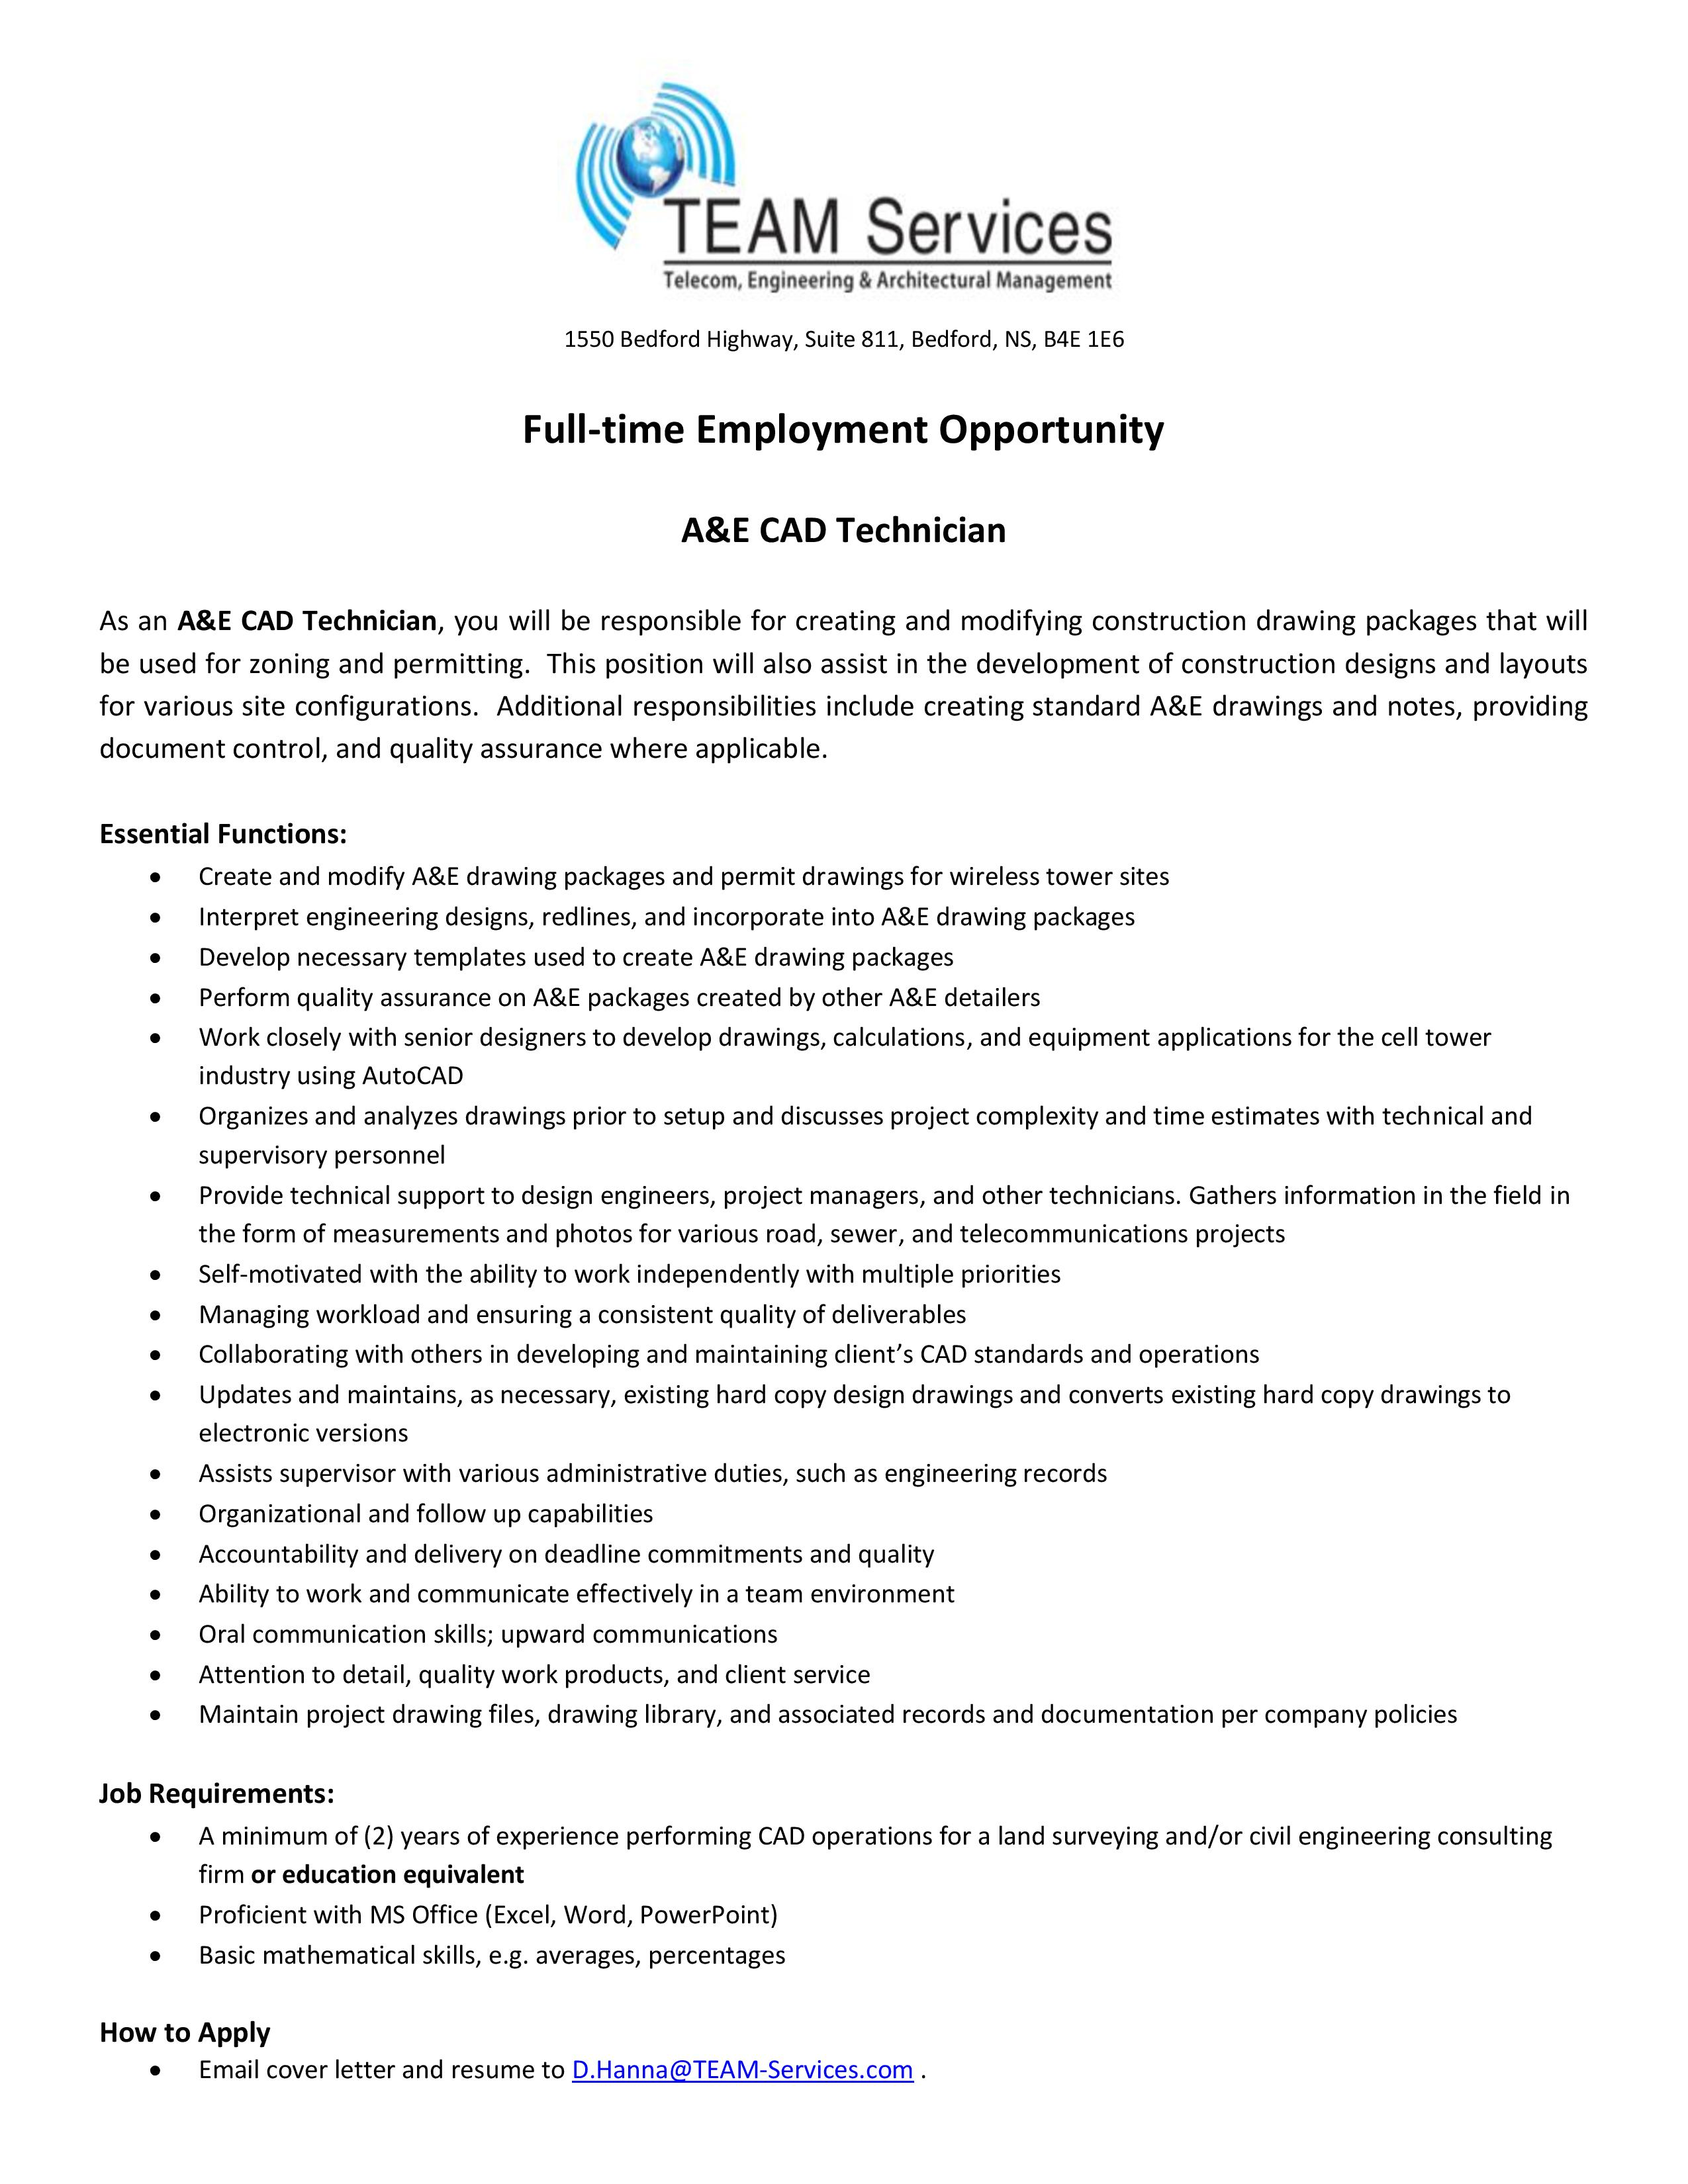 TEAM Services - A&E CAD Technician | Opportunity Place